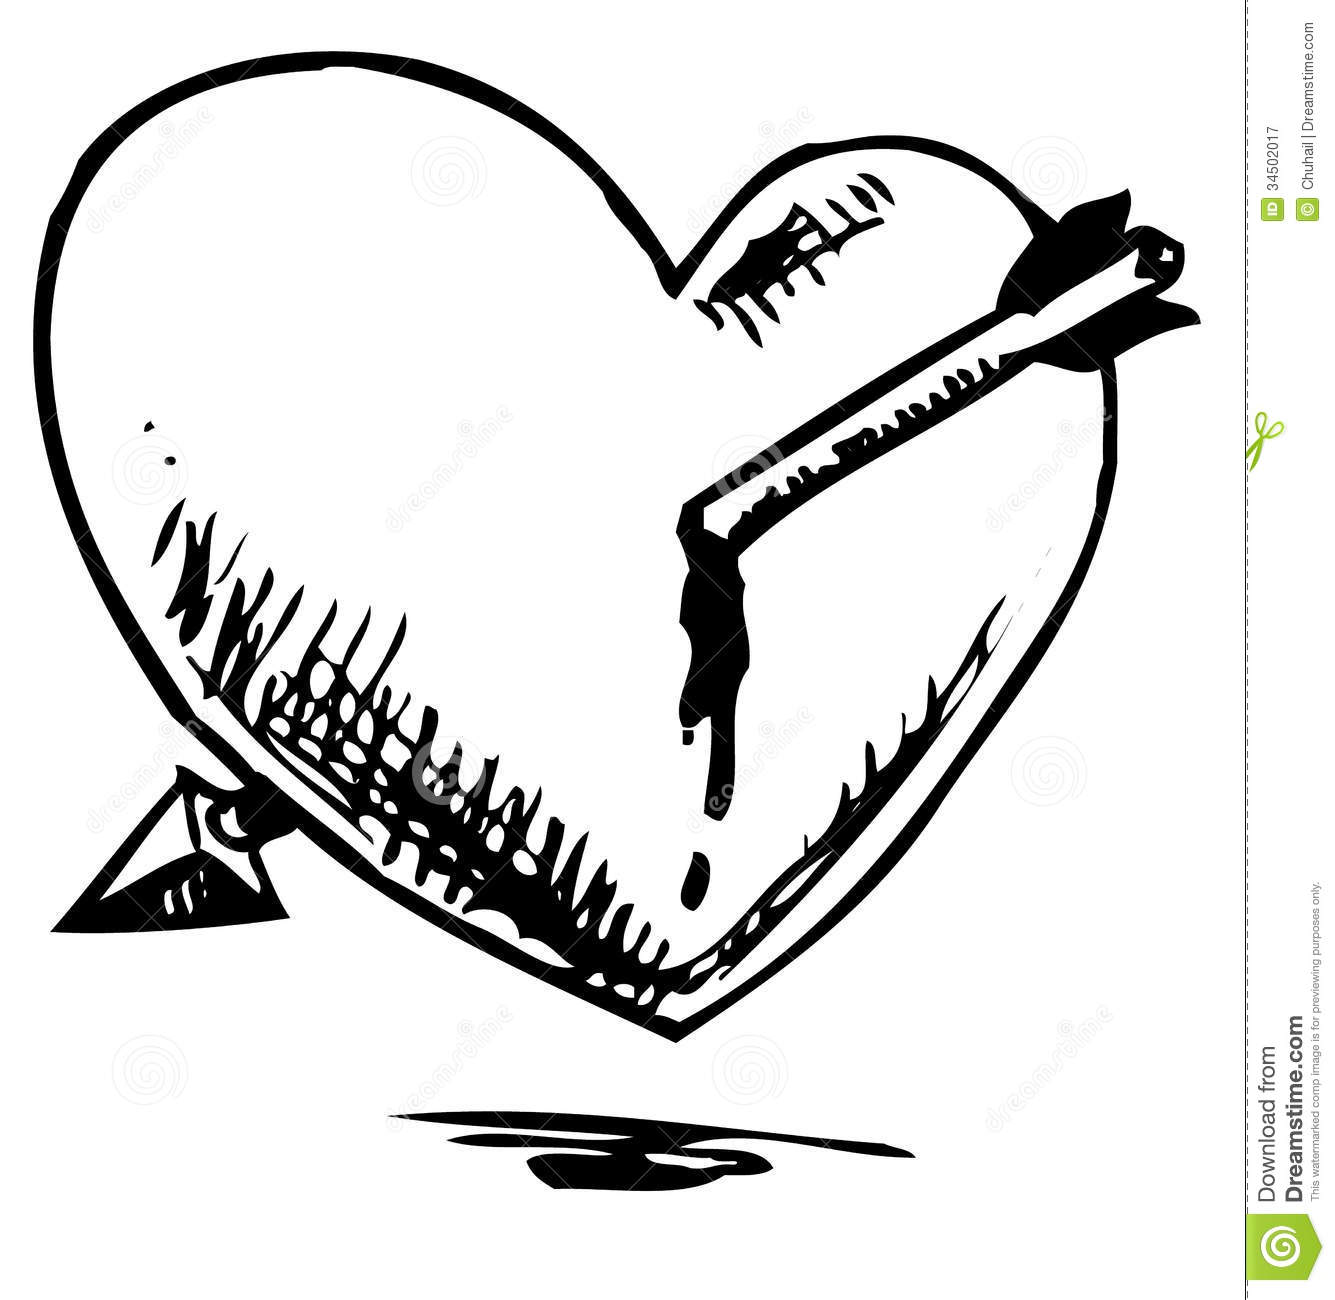 Heart Hurted With Arrow Stock Image. Image Of Elegance - 34502017